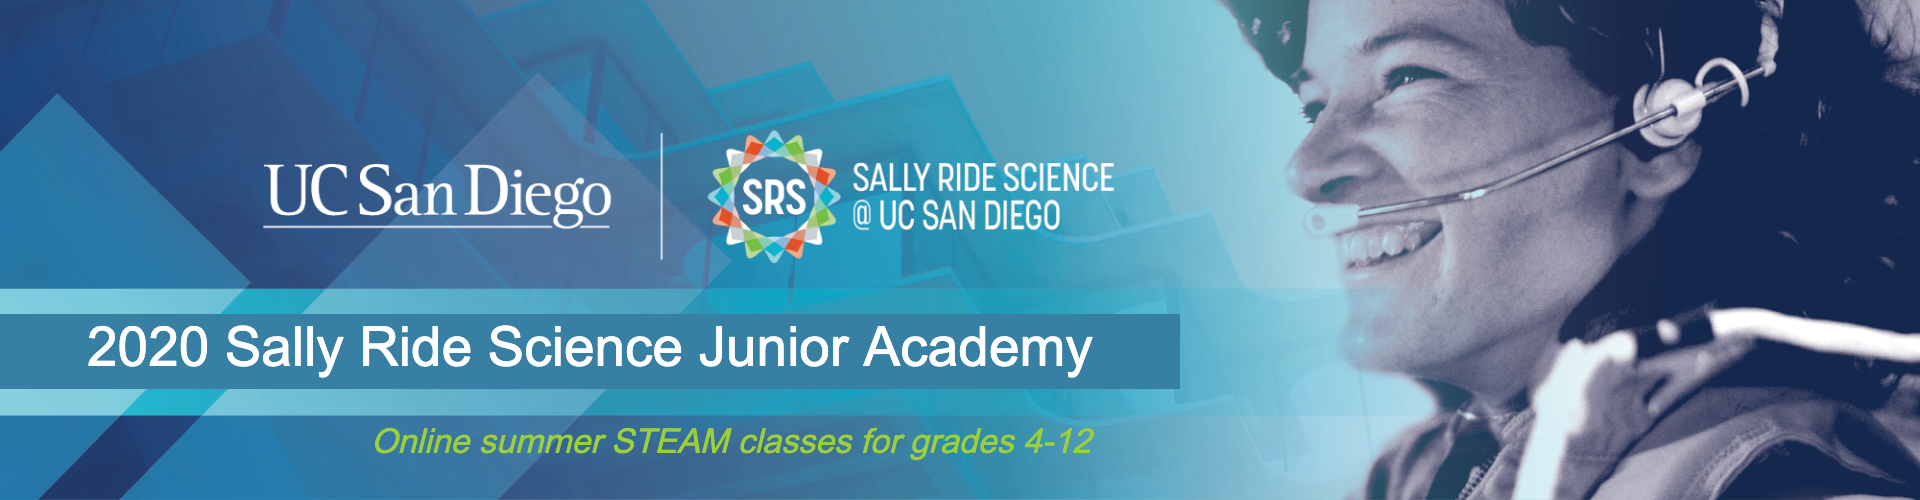 SRS Junior Academy